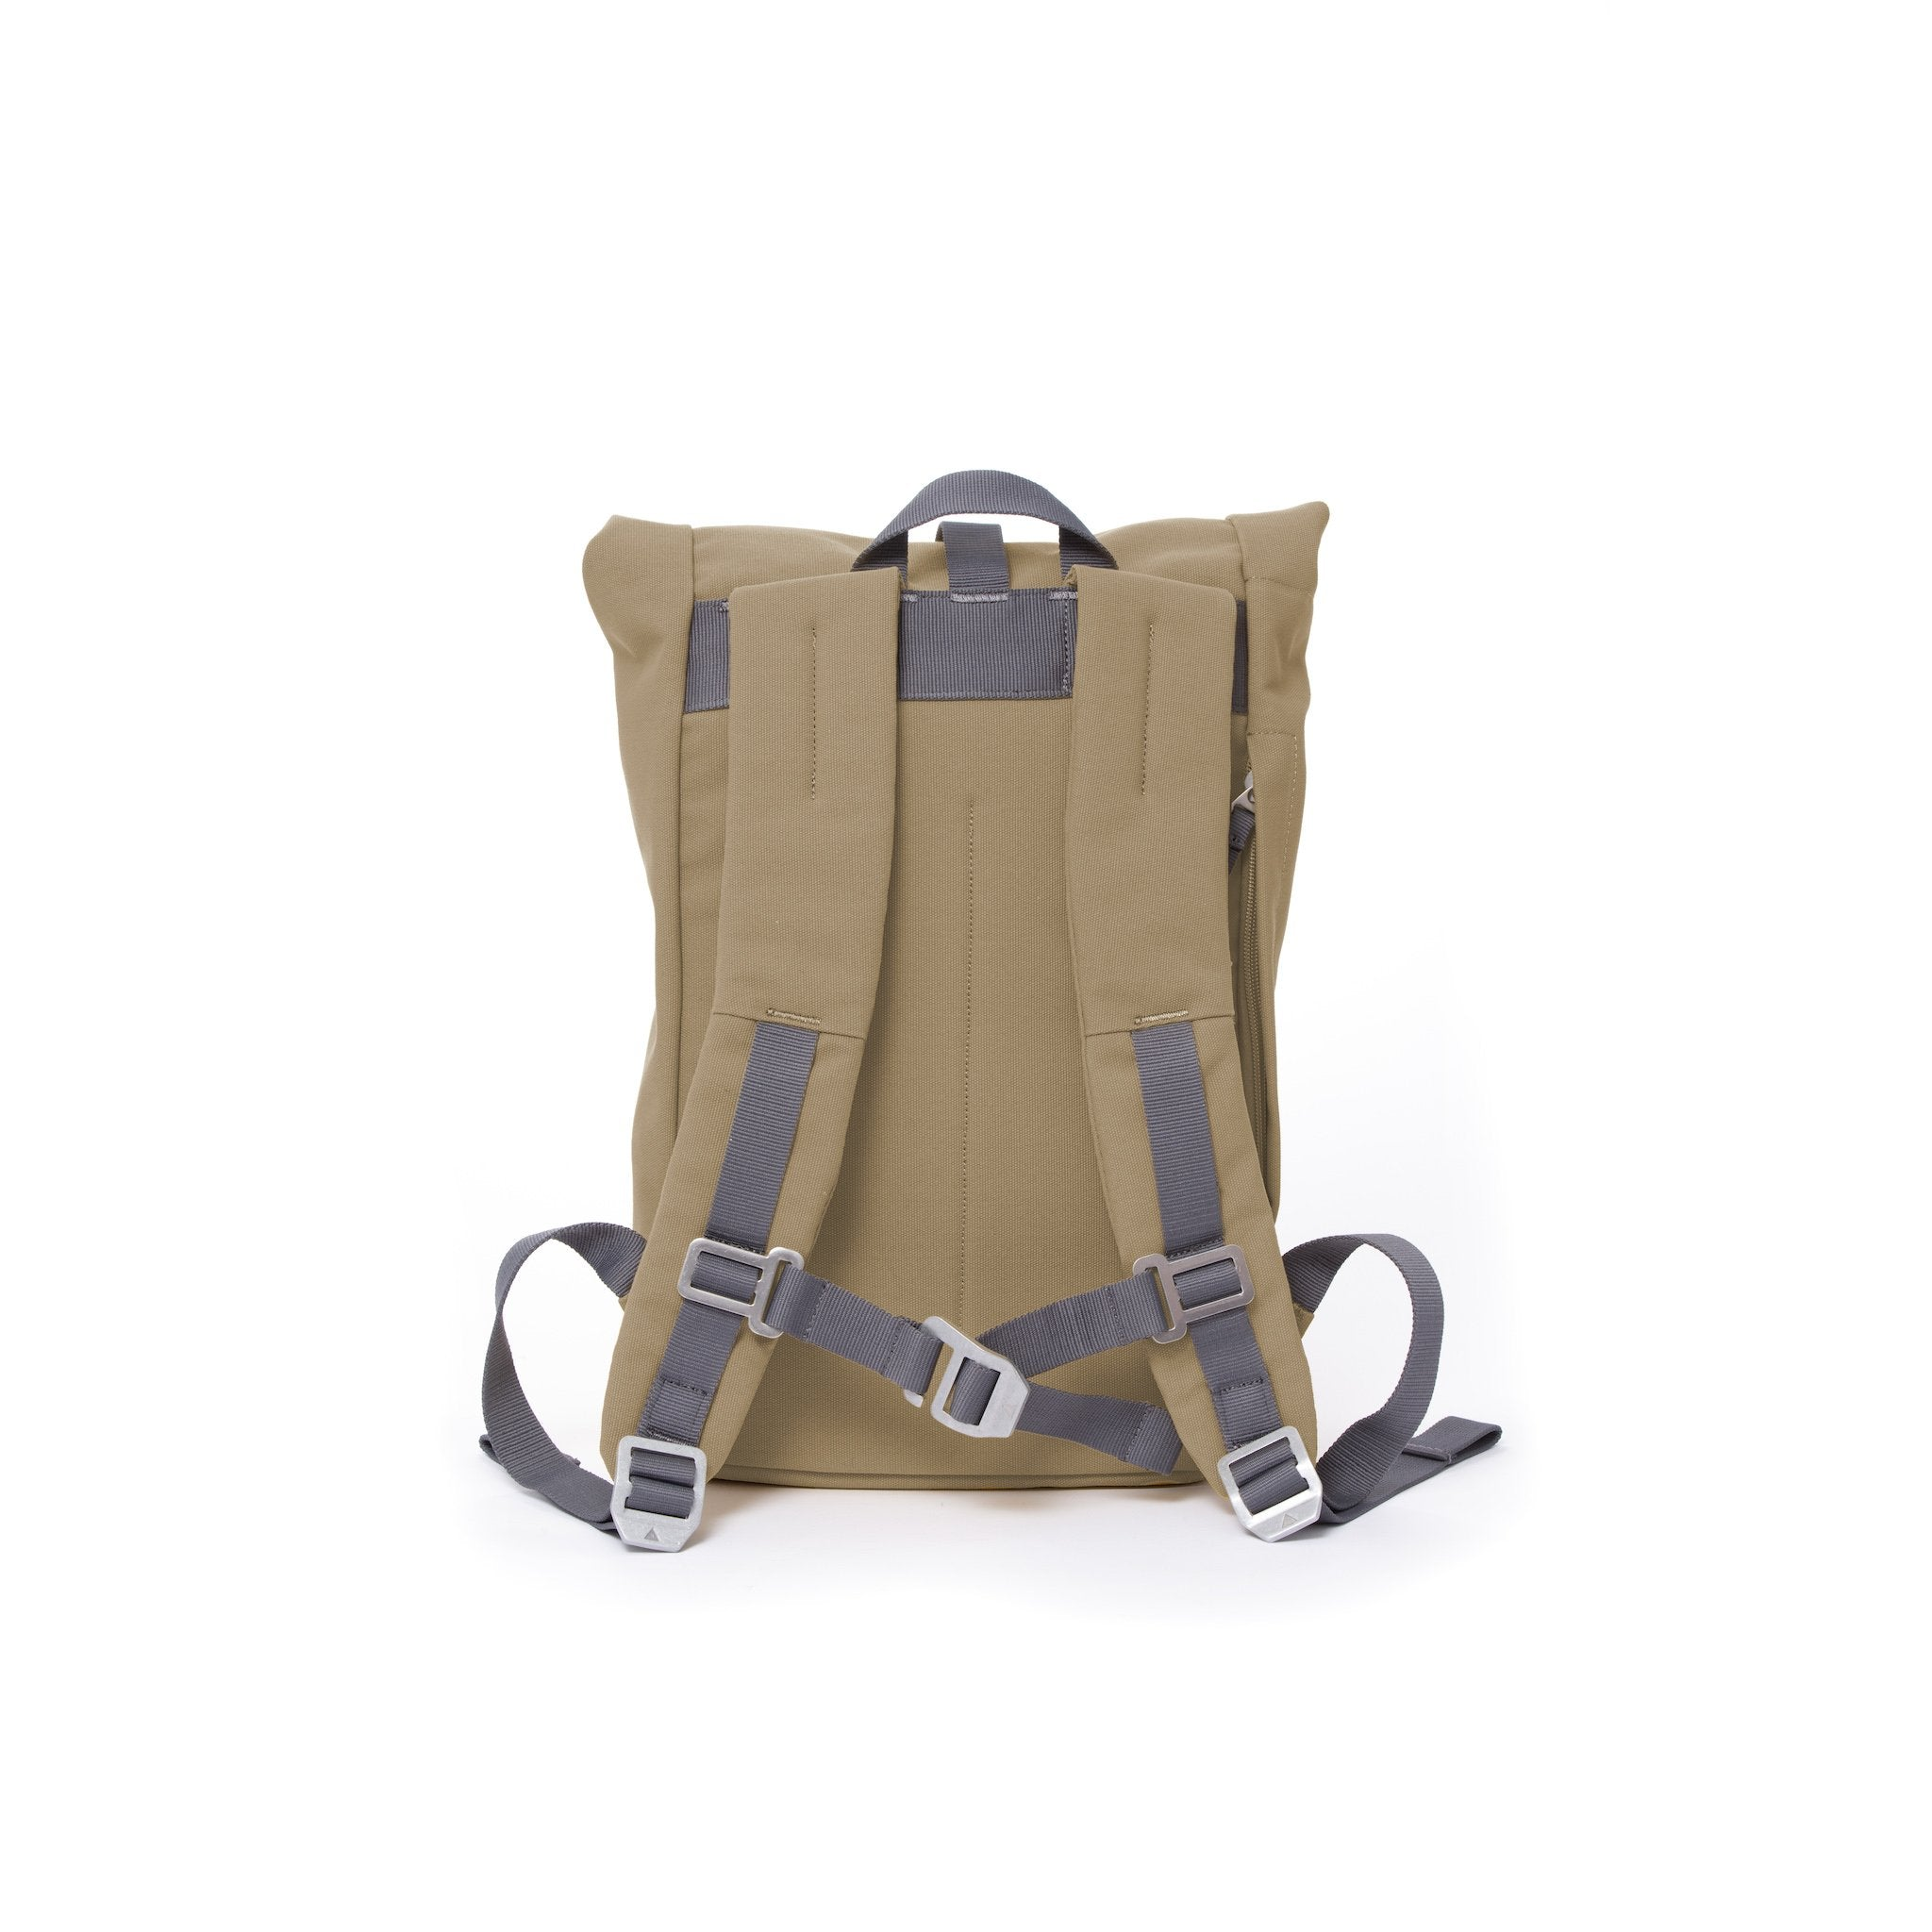 Khaki small rolltop backpack with padded shoulder straps and chest strap.